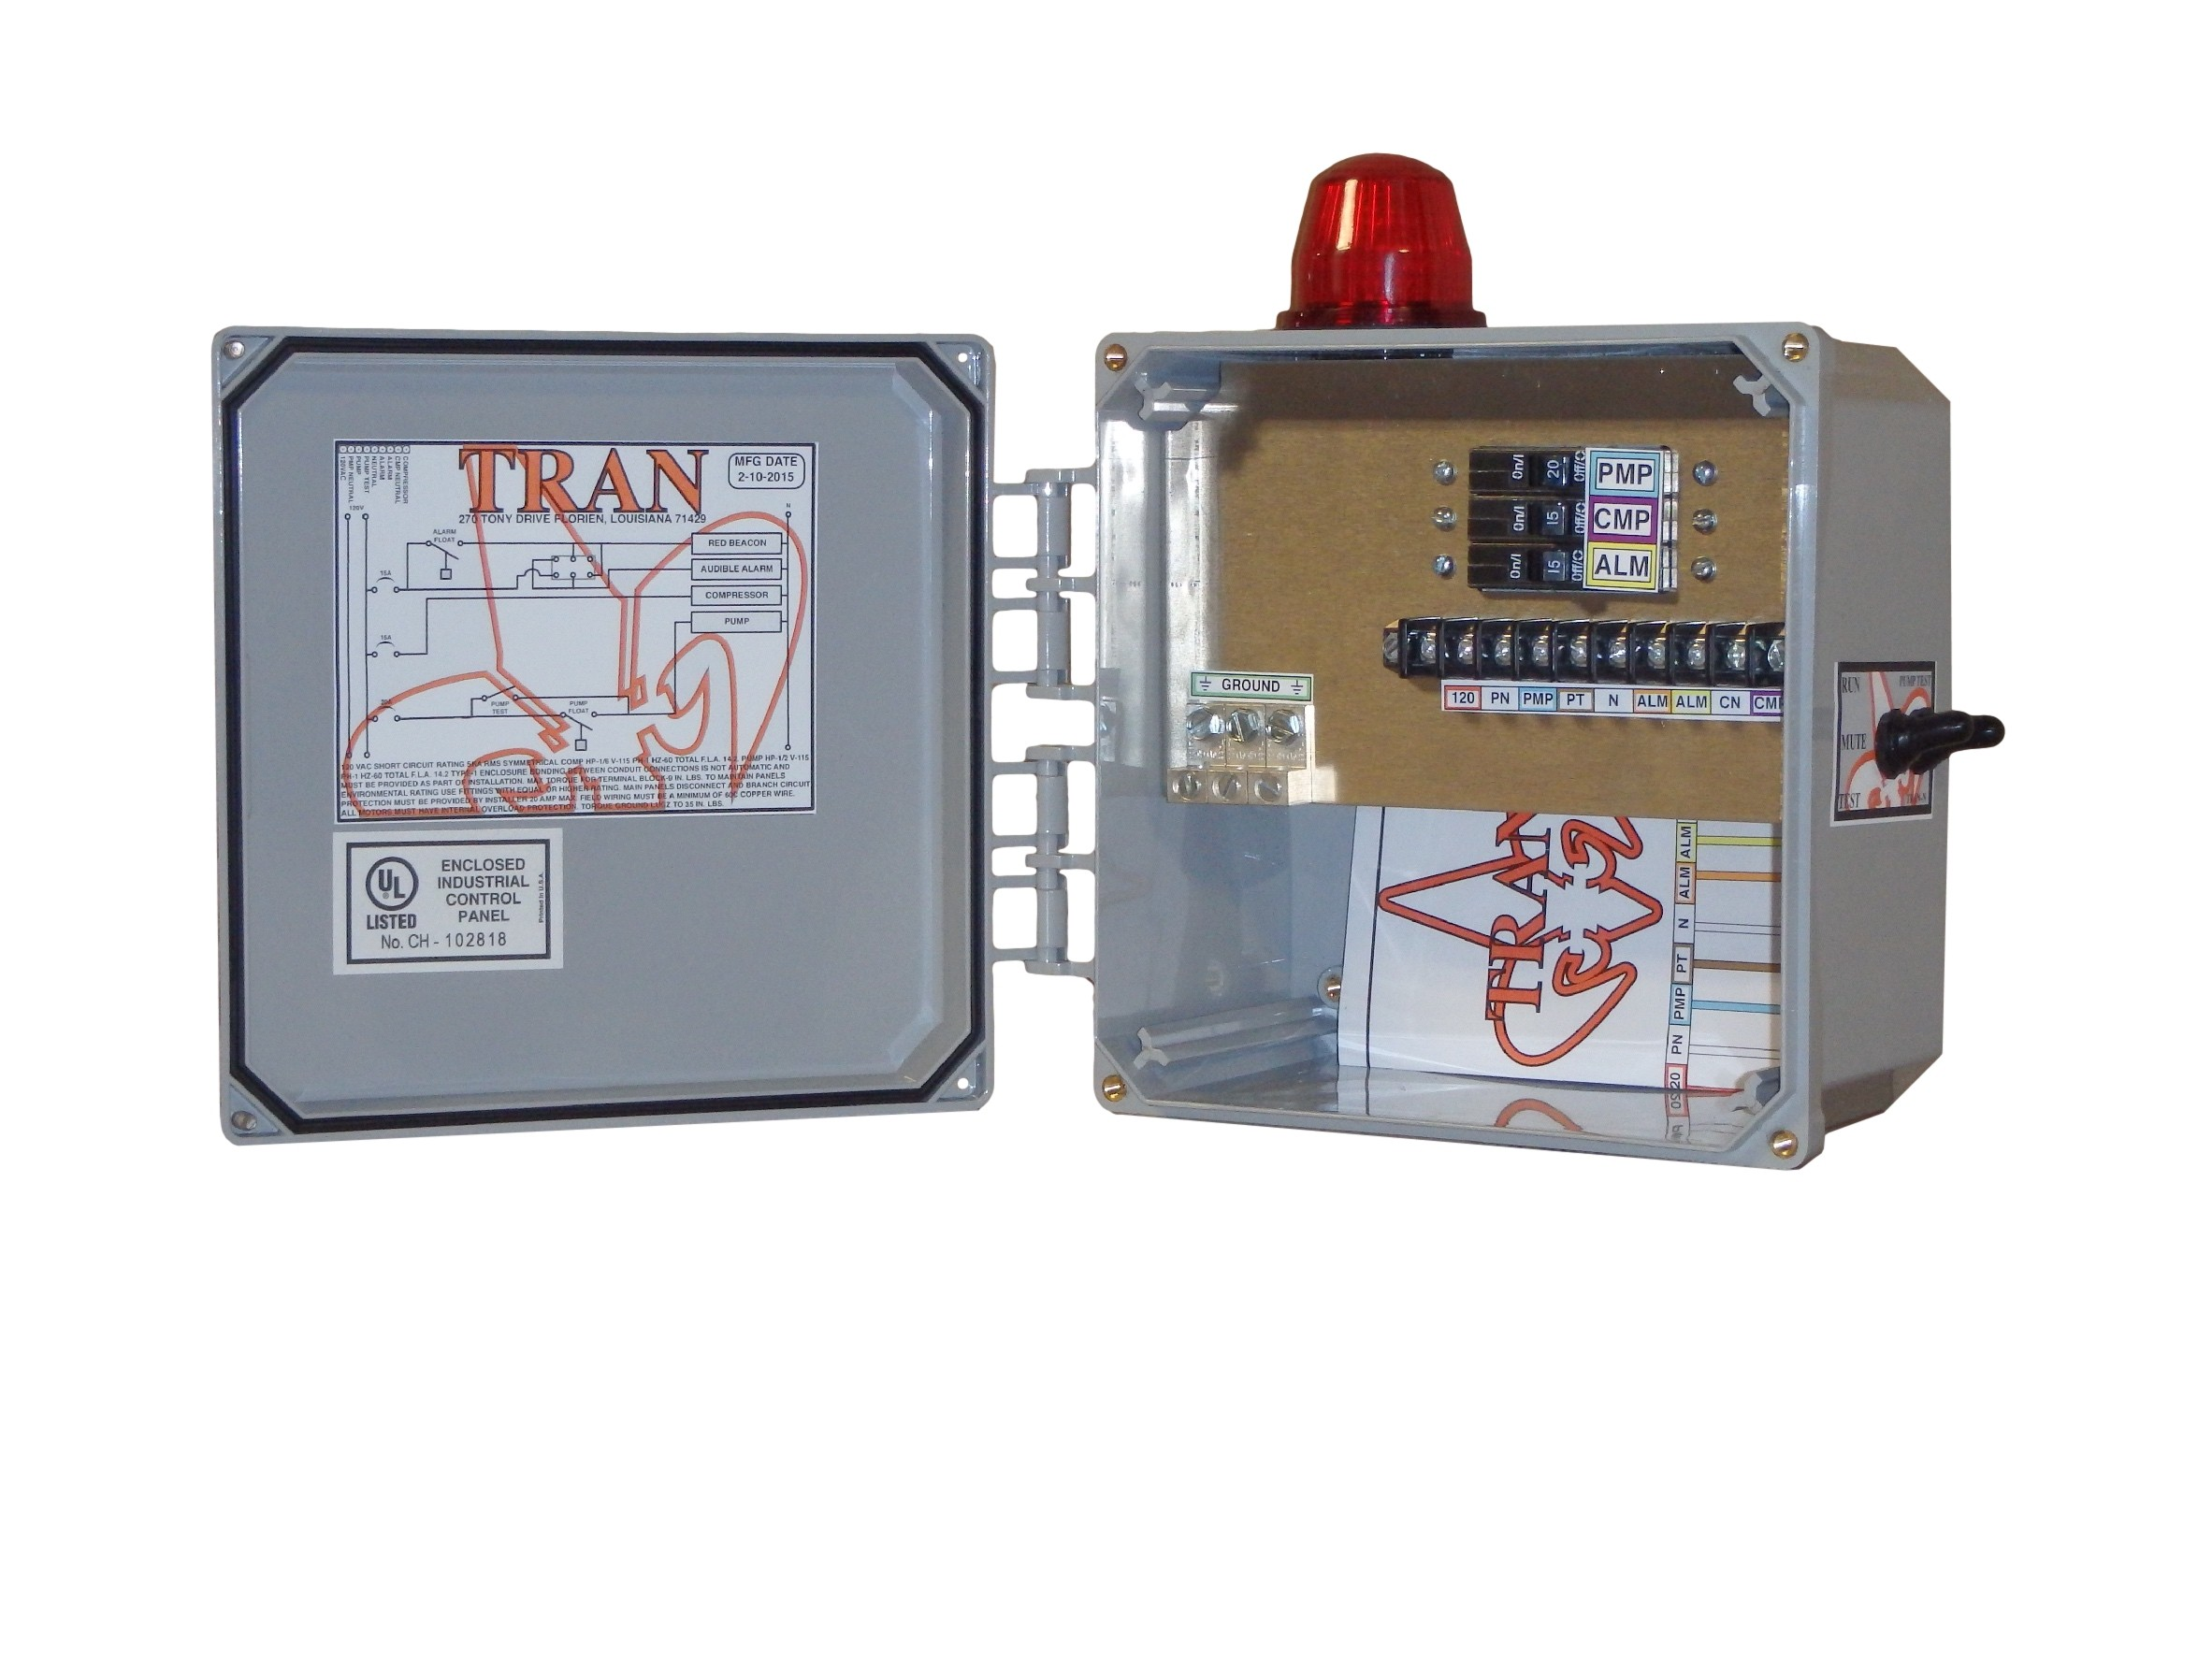 Tran-N Aerobic Septic Control Panel Without Timer